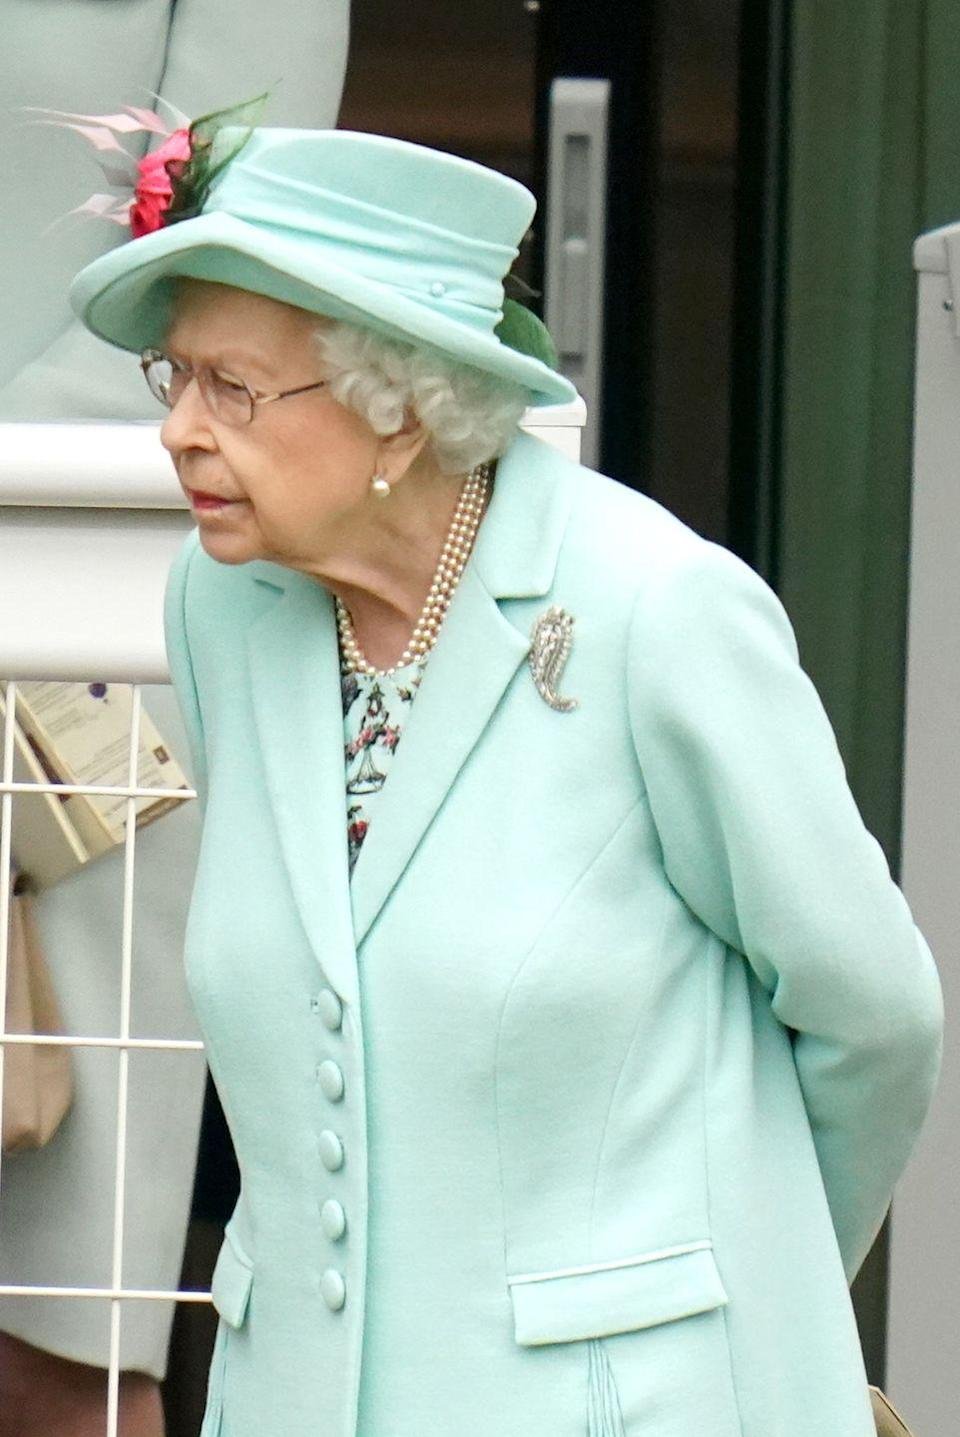 <p>For today's events, the Queen opted for a pale blue ensemble with a matching hat adorned with striking pink flowers.</p>